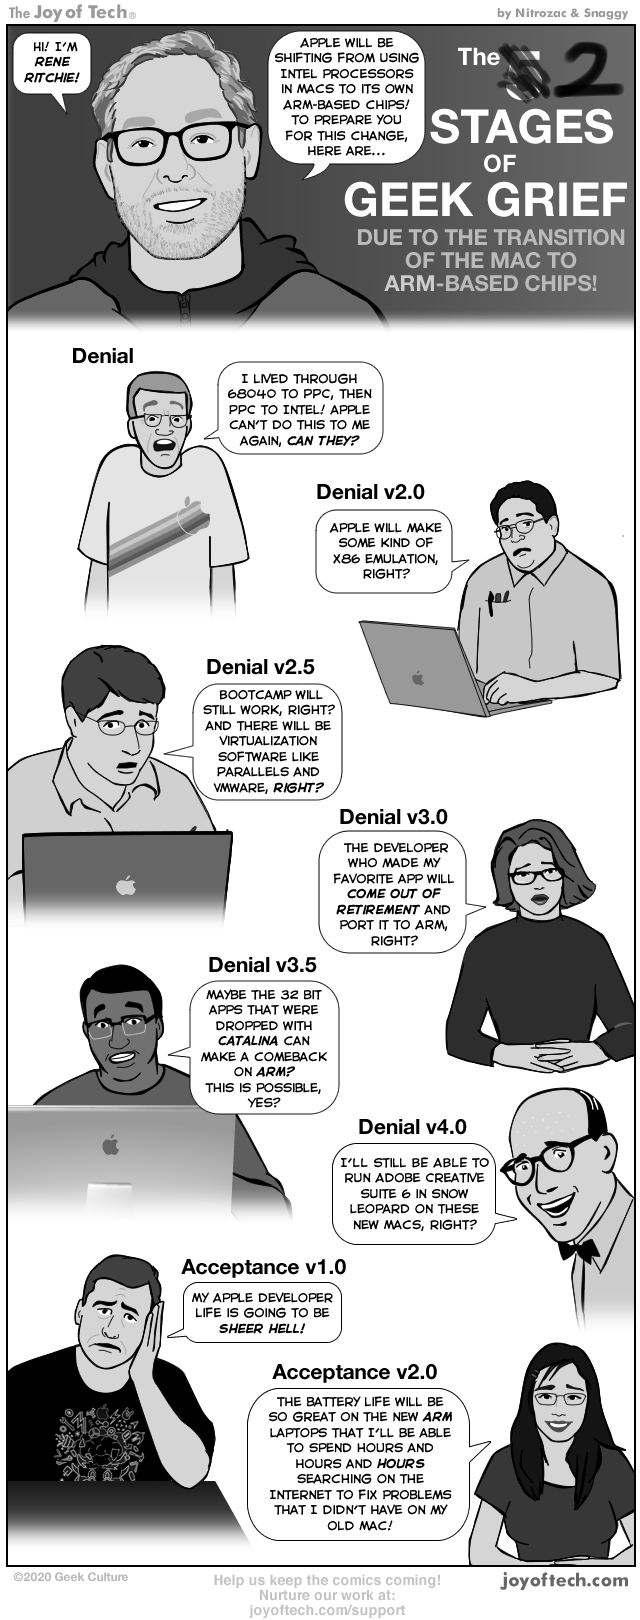 Via   the Comic Noggins of  Nitrozac    and    Snaggy    at    The Joy of Tech®   !